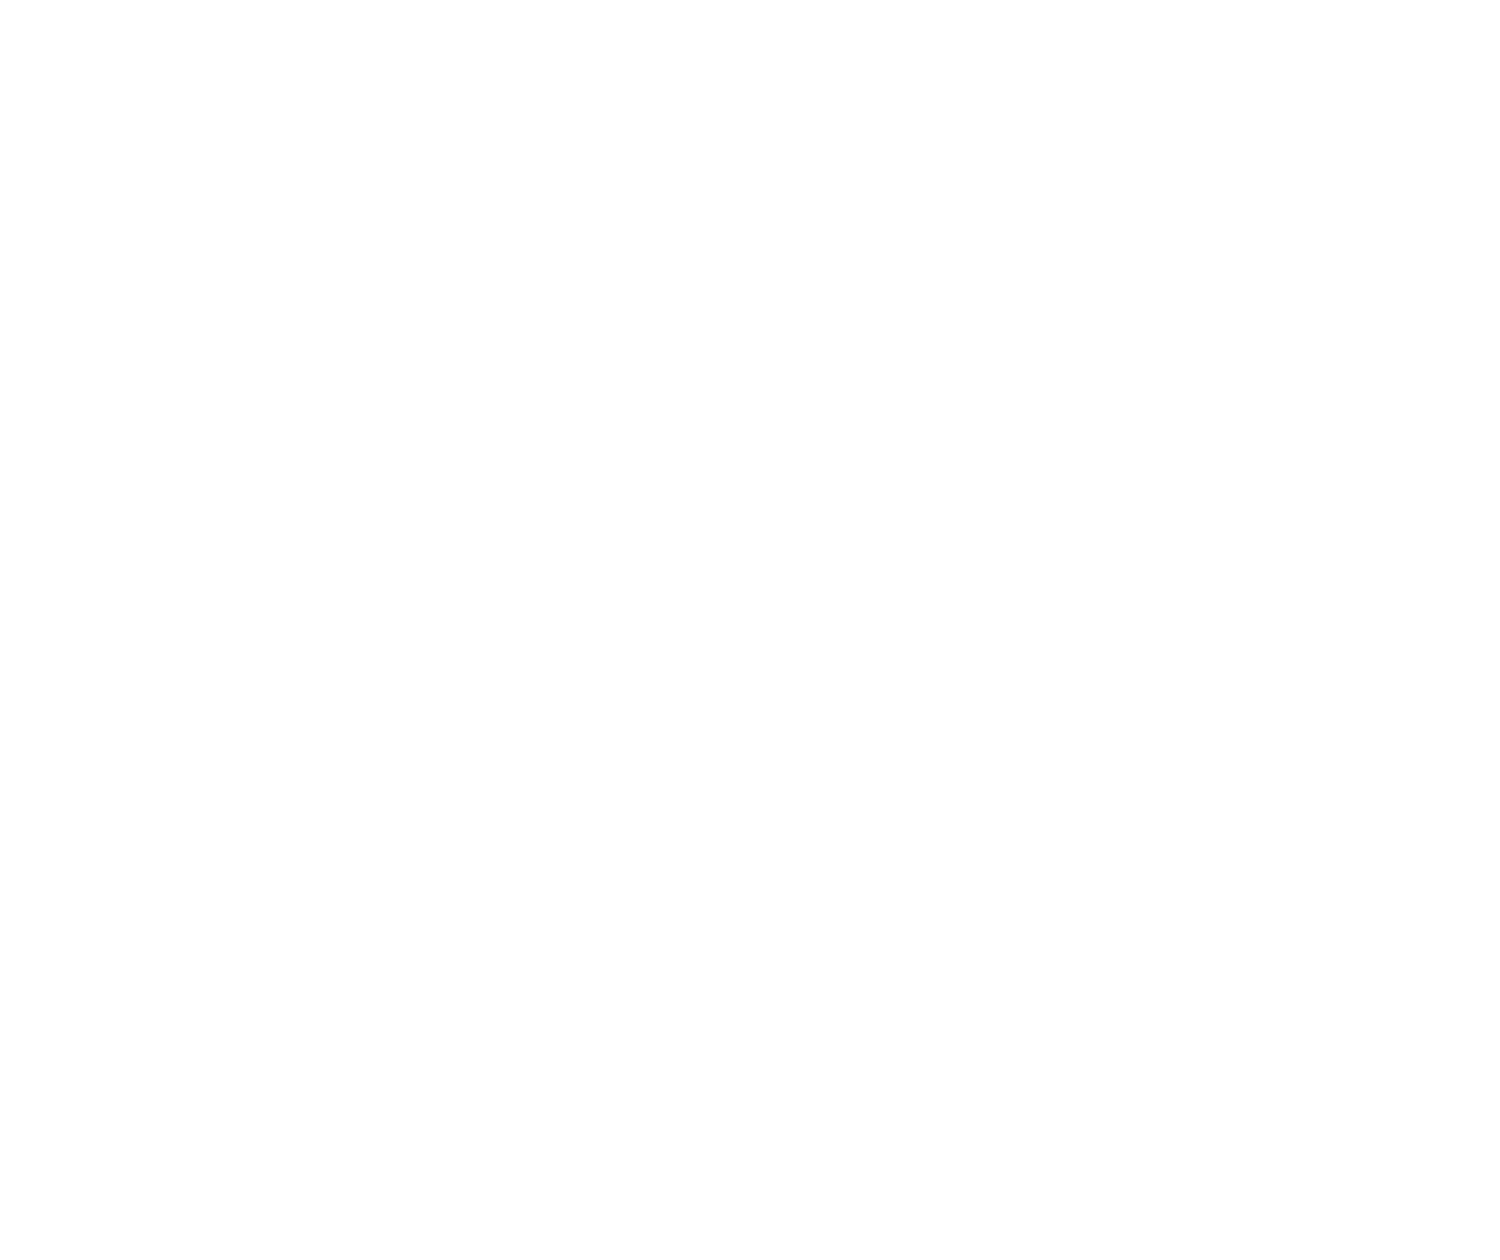 Bolageriet